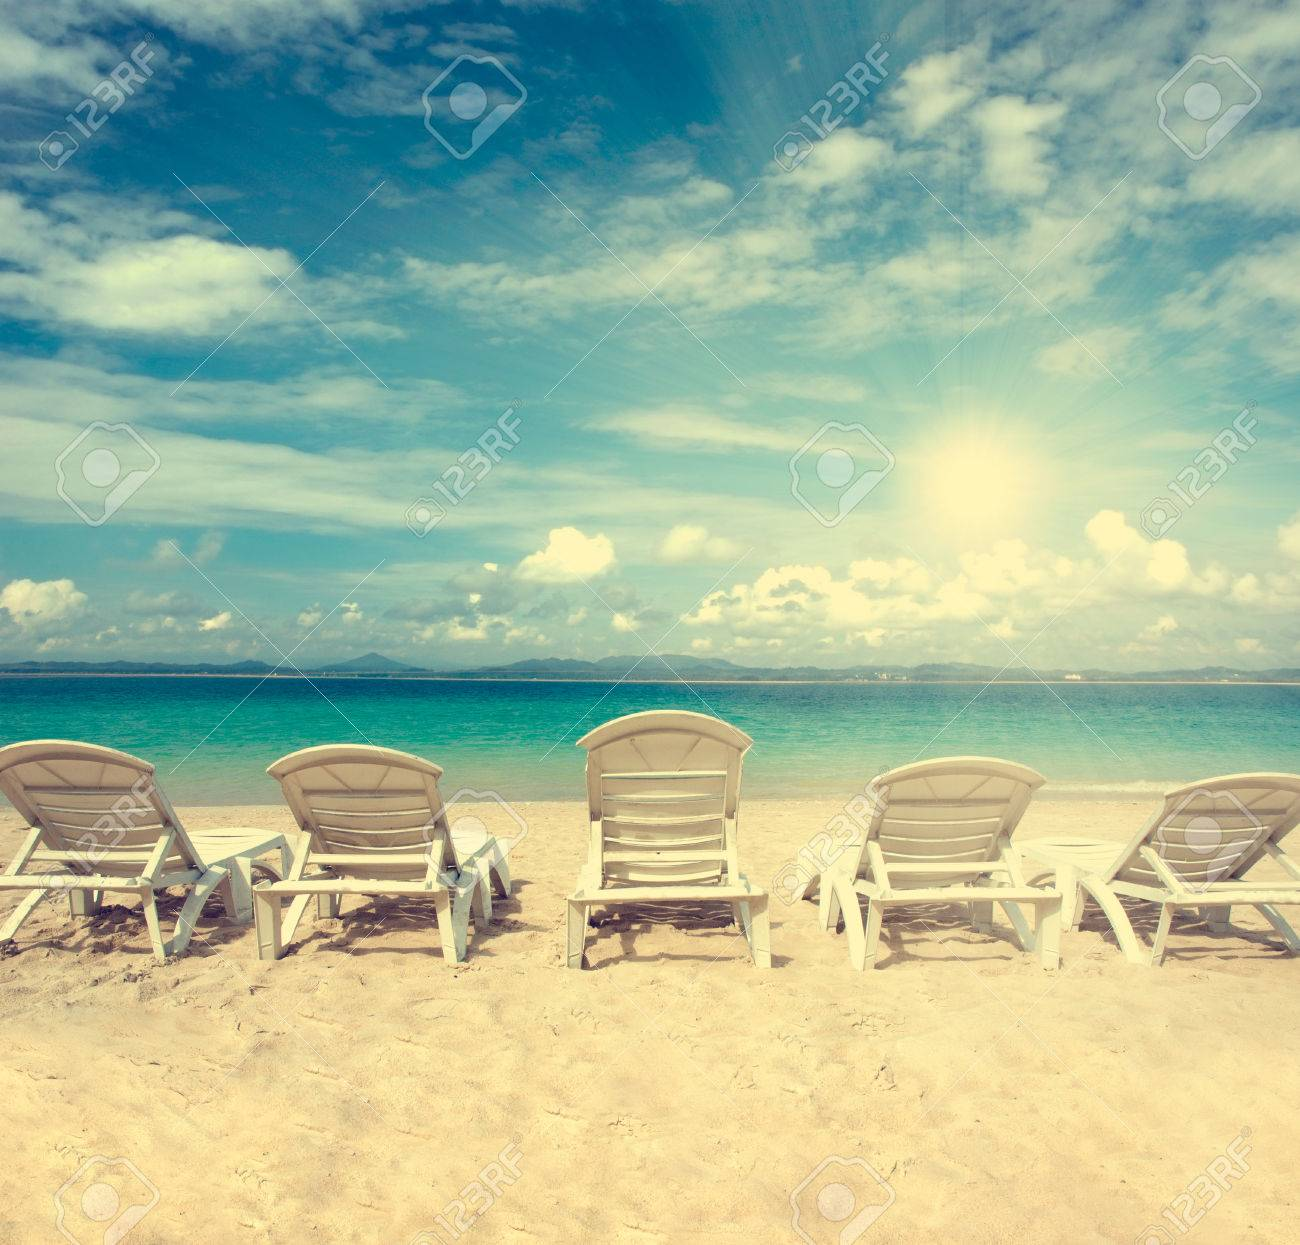 Beach with chairs - Chairs On Beach With Blue Sky For Summer Holiday Vintage Retro Filter